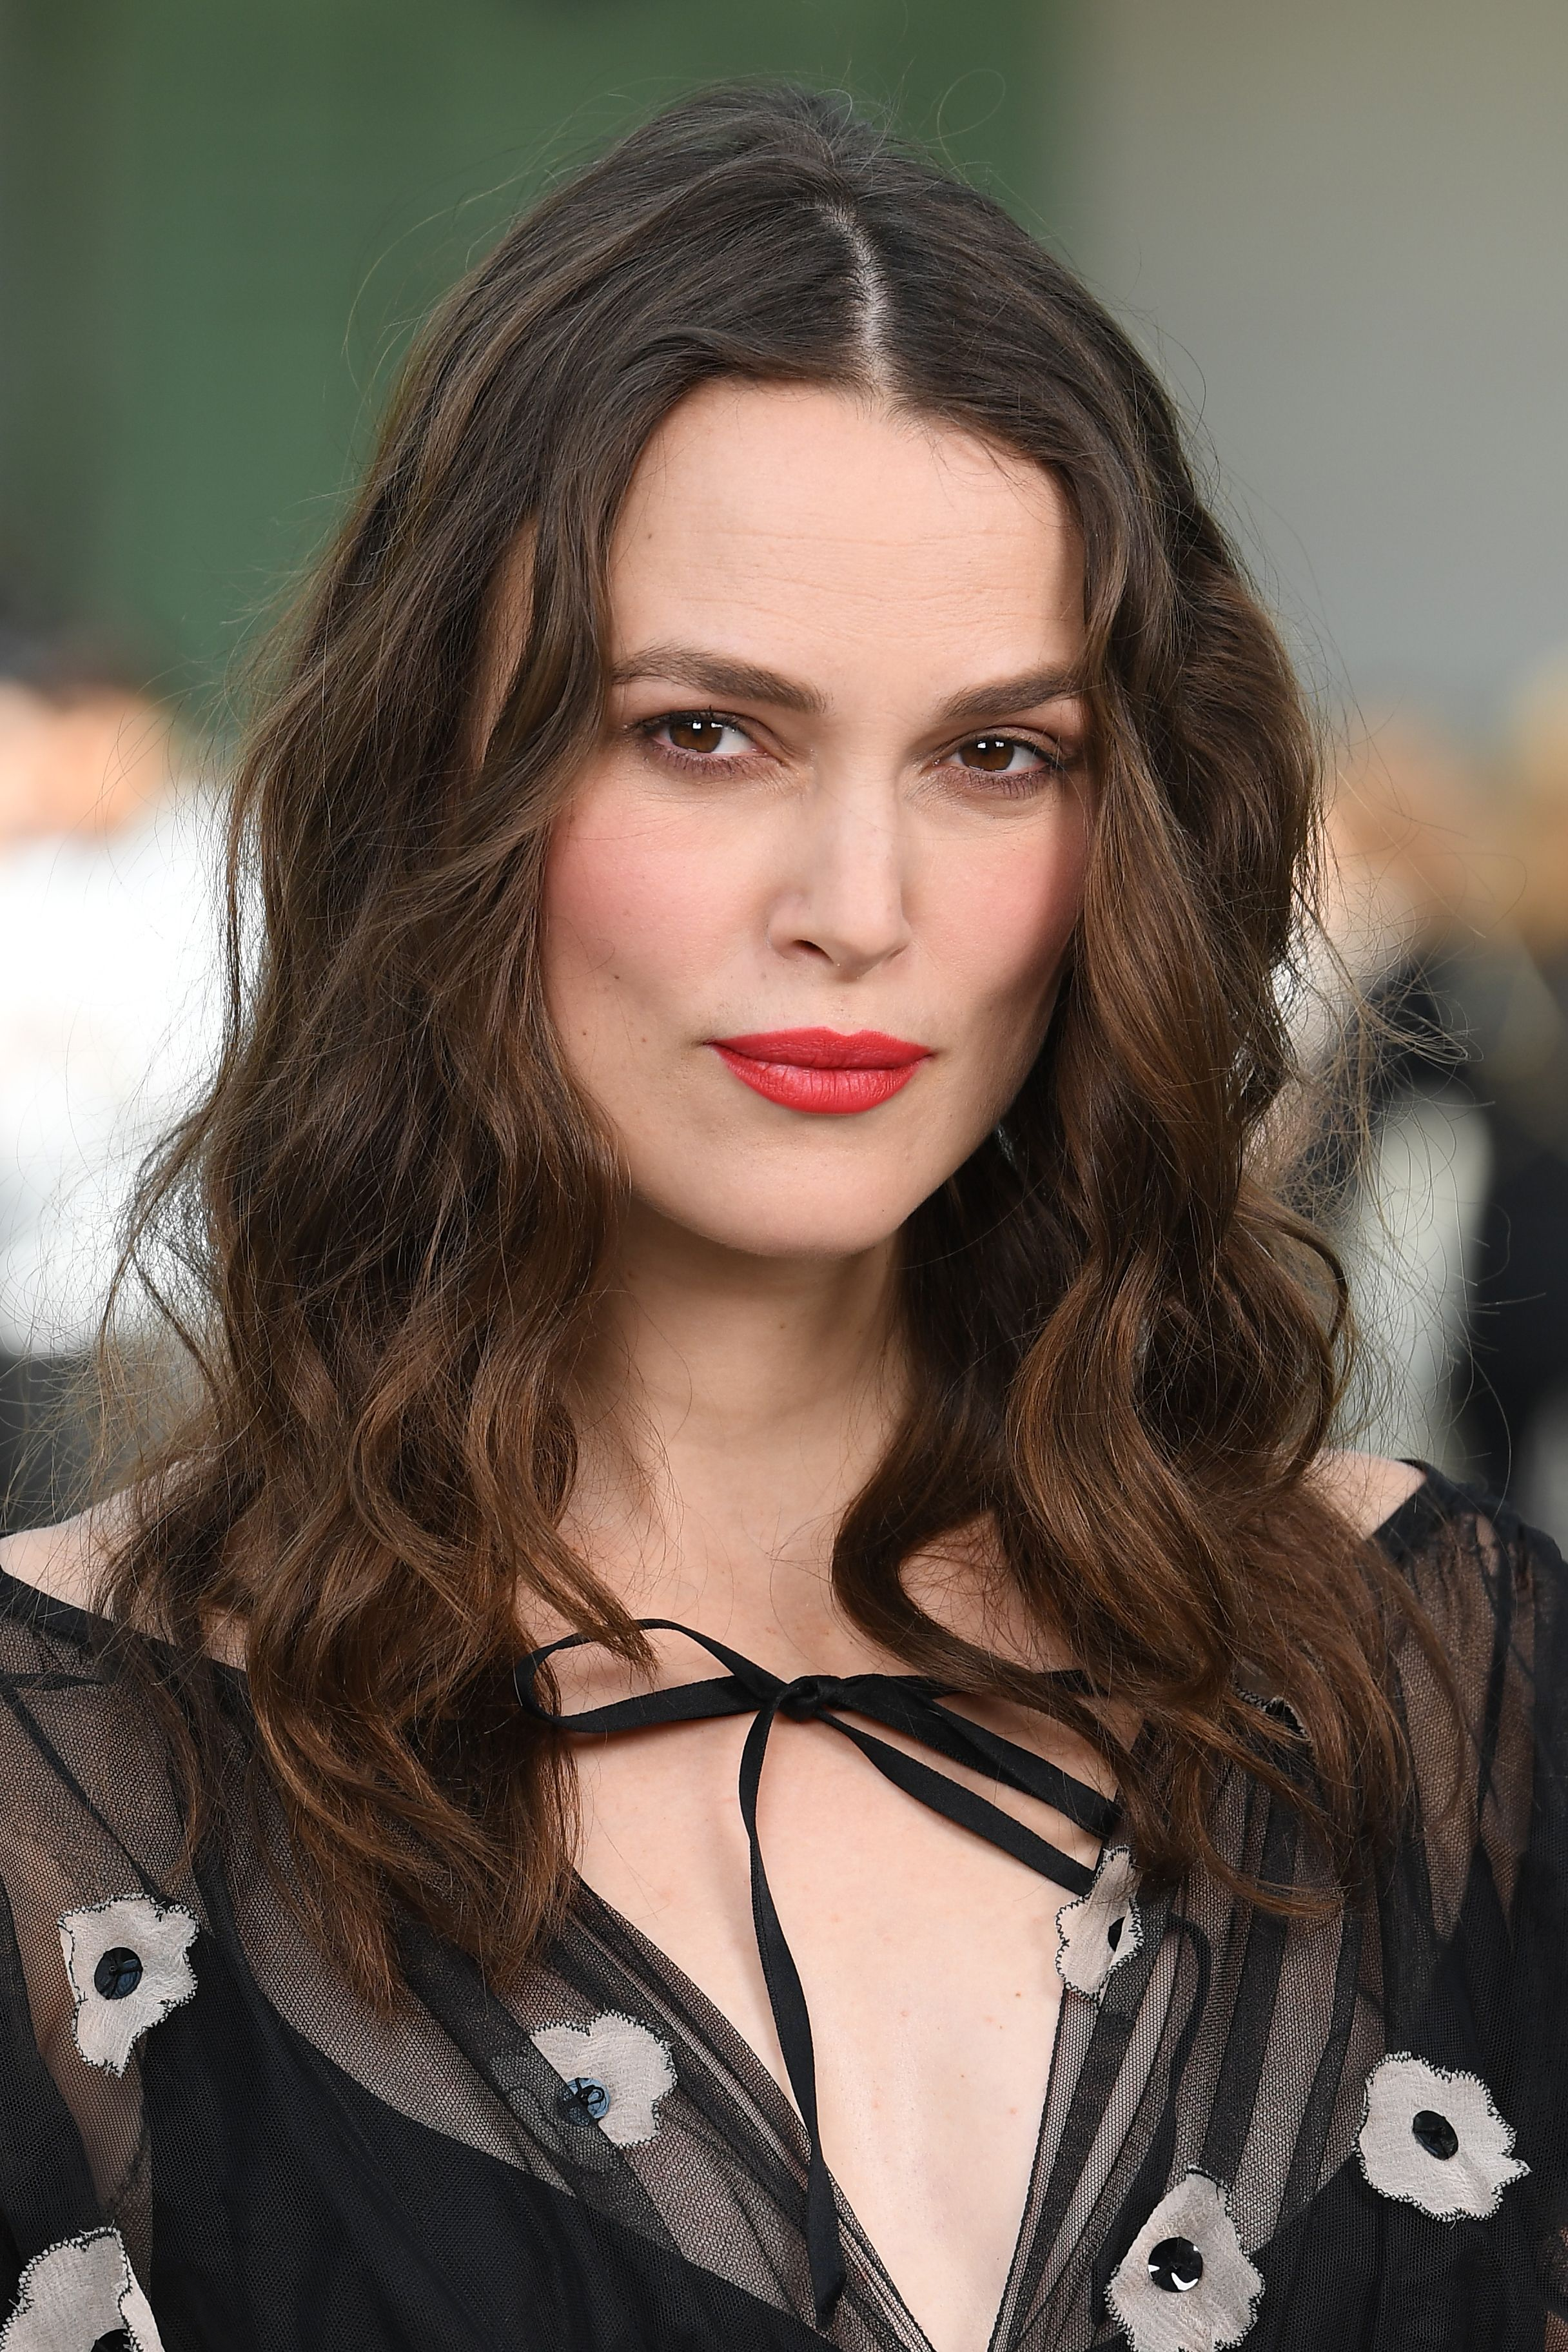 Keira Knightley at the Chanel Cruise 2020 Collection in 2019 in Paris, France | Source: Getty Images